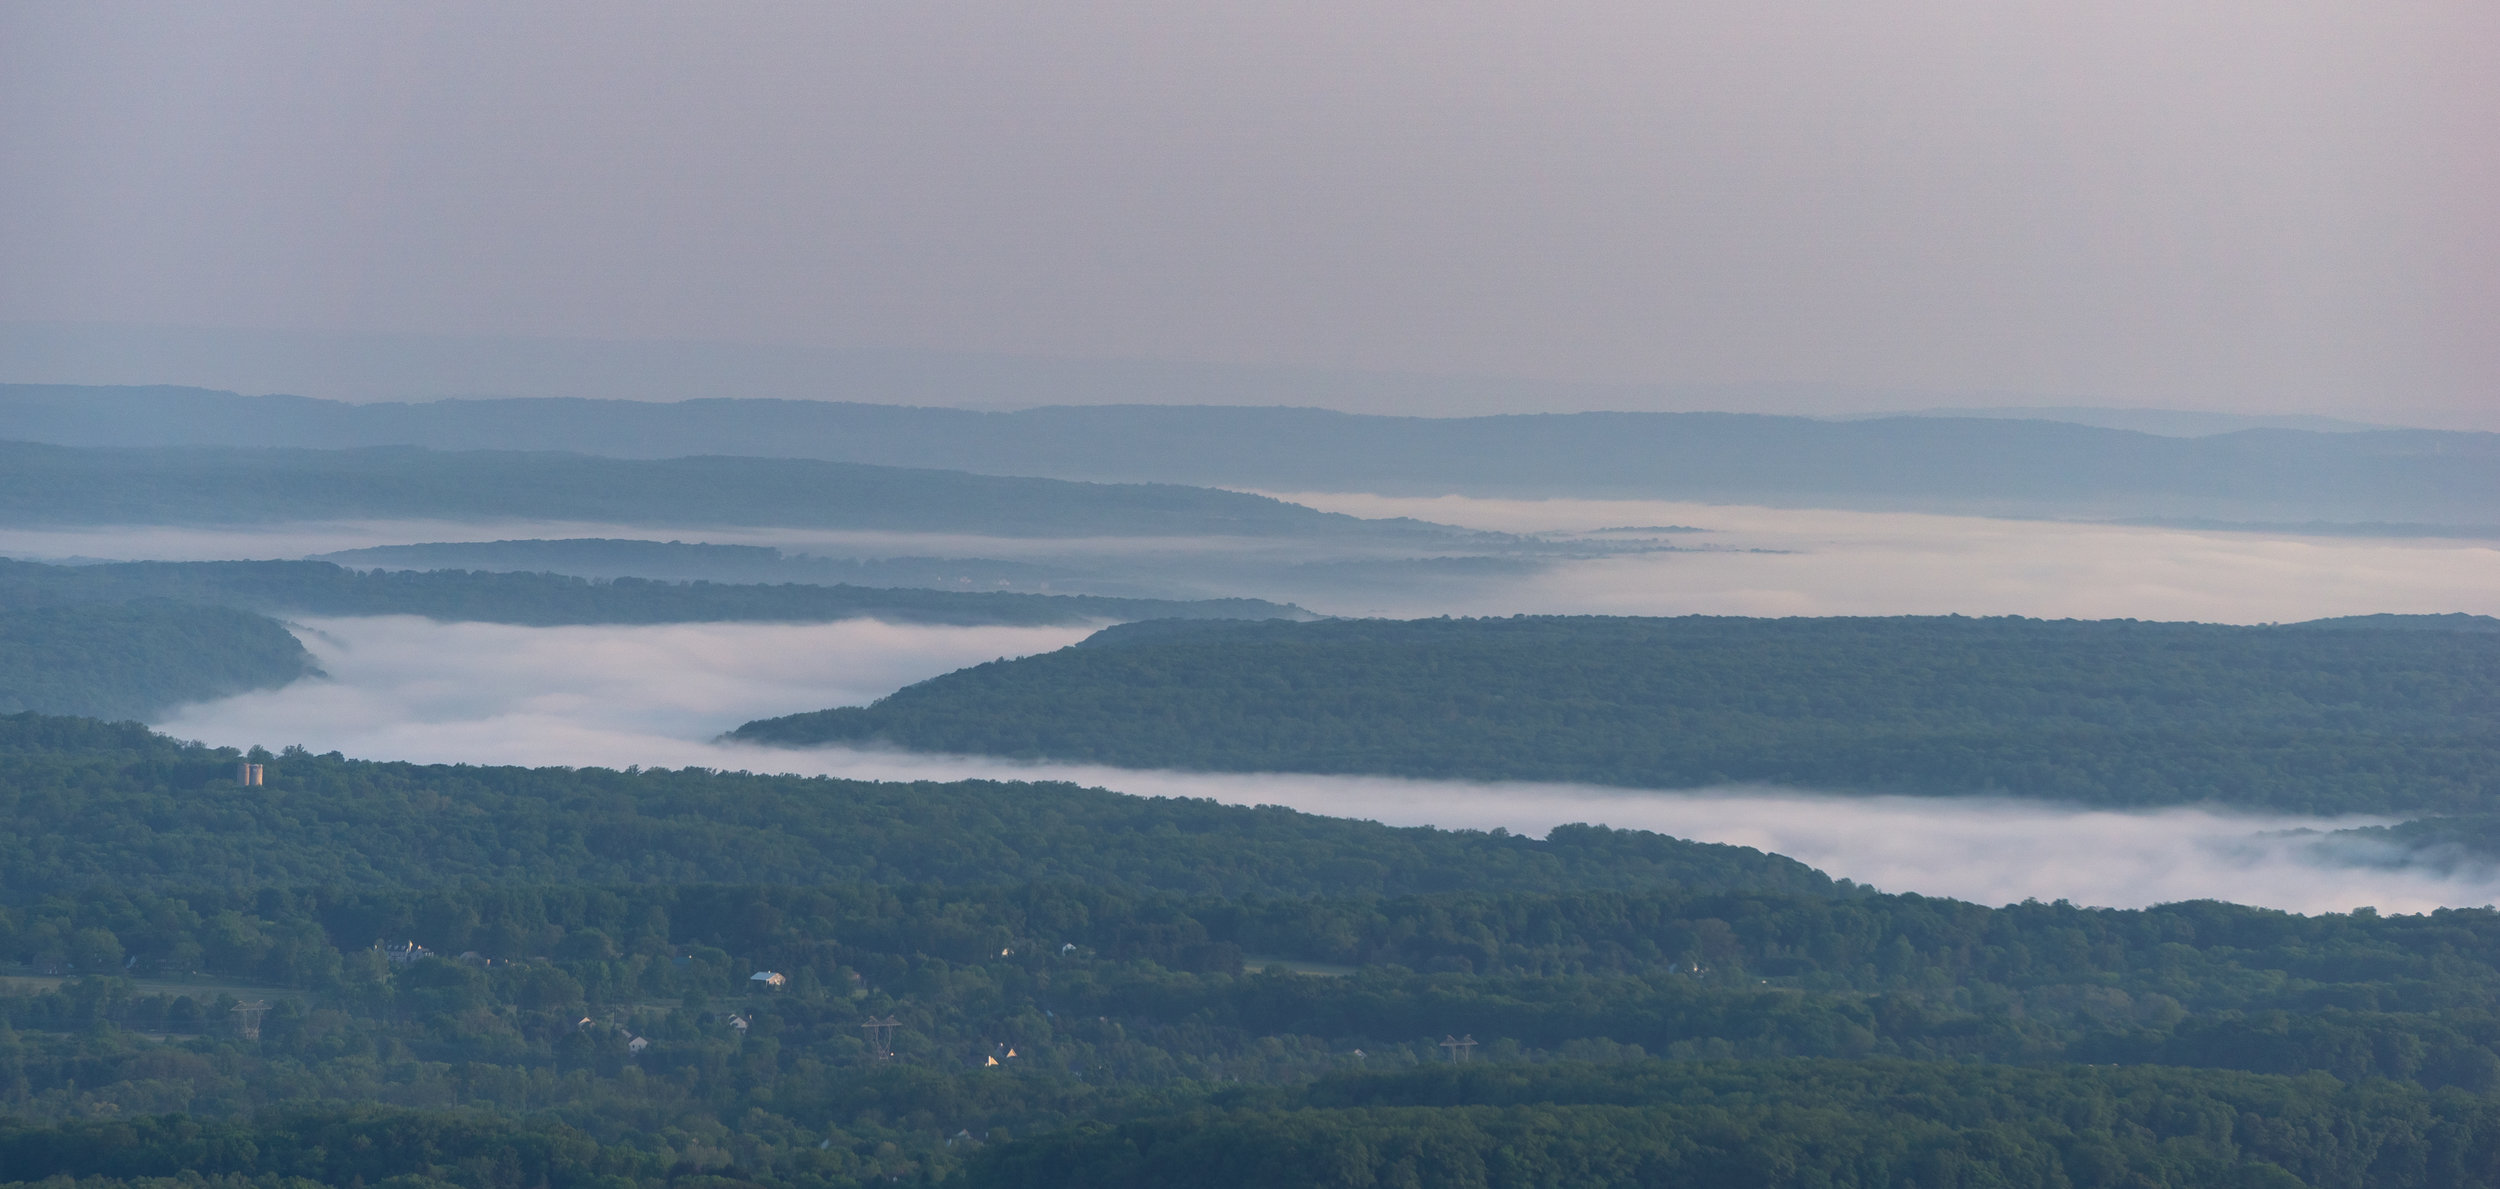 Here you can see the dense morning fog churning over the Delaware River.